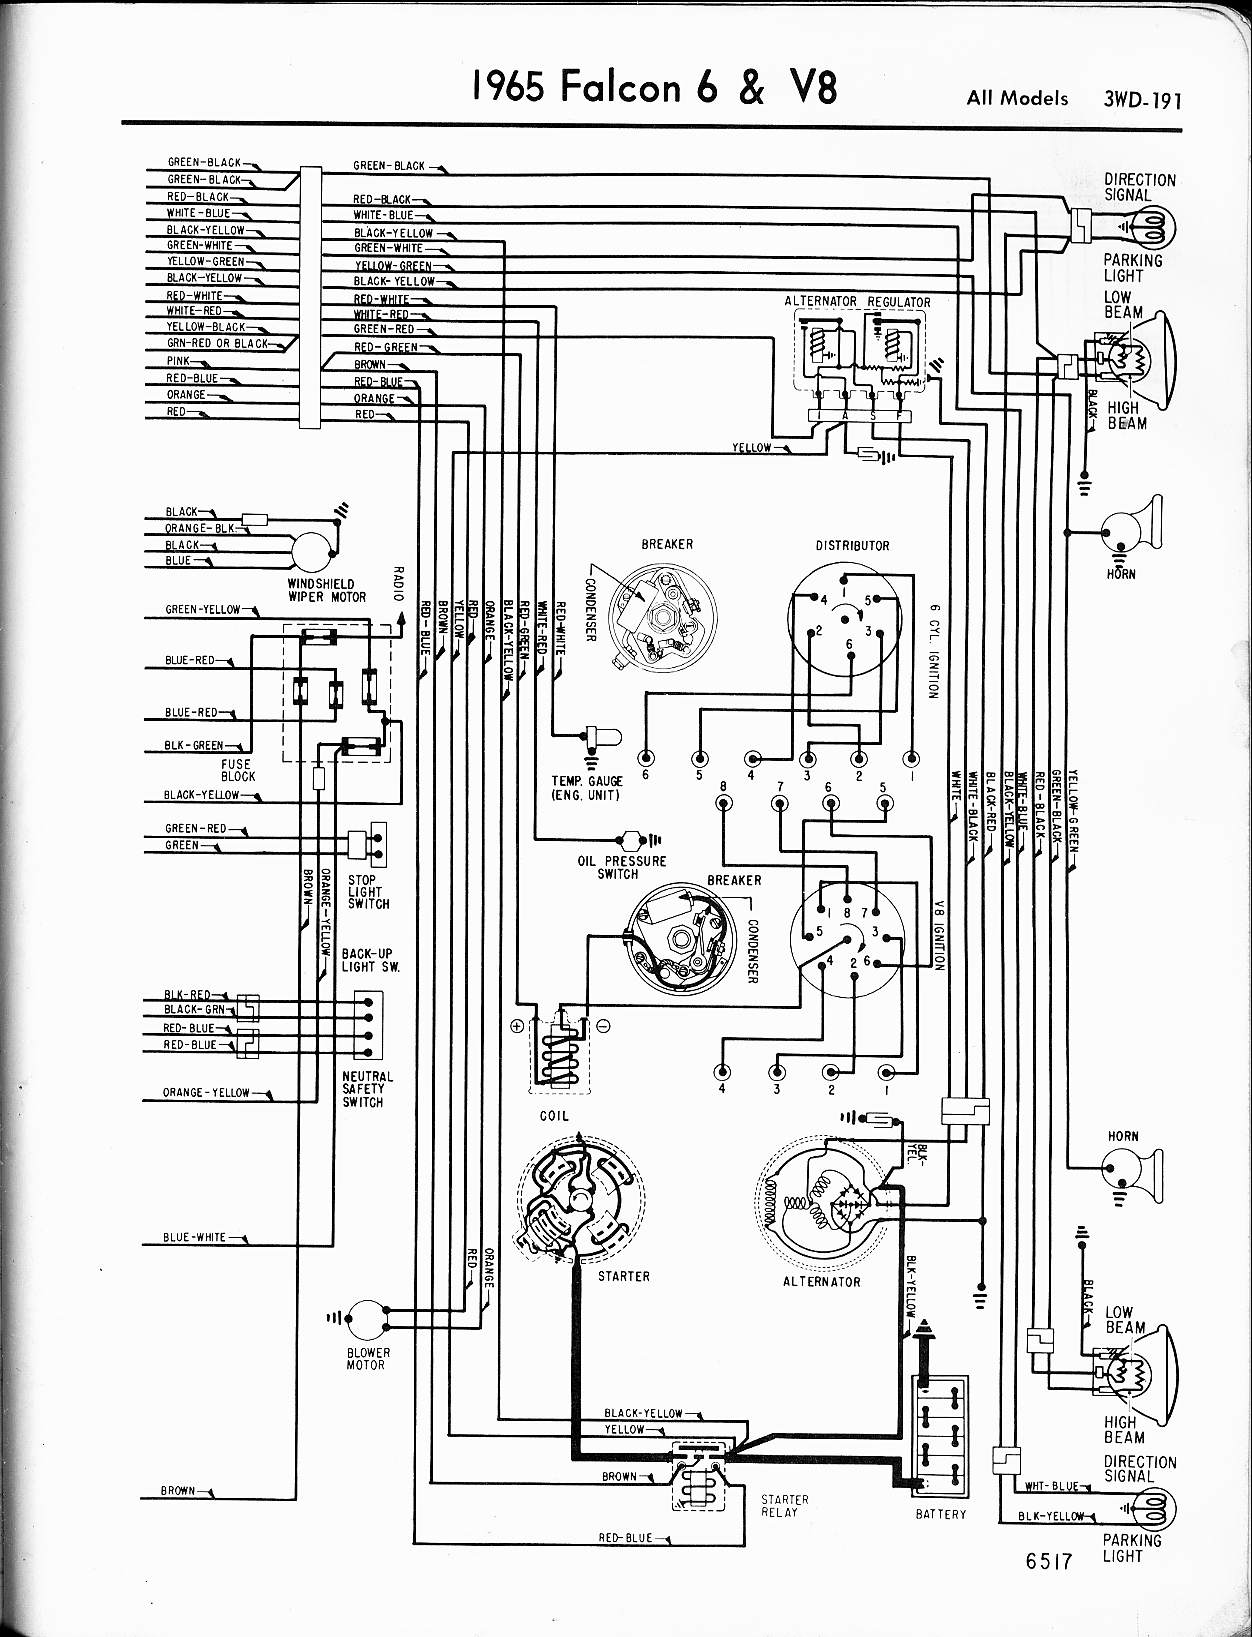 1967 Ford Ranchero Ignition Wiring Diagram Automotive 1971 Torino With On Engine Rh 14 5 Medi Med Ruhr De Coil Alternator